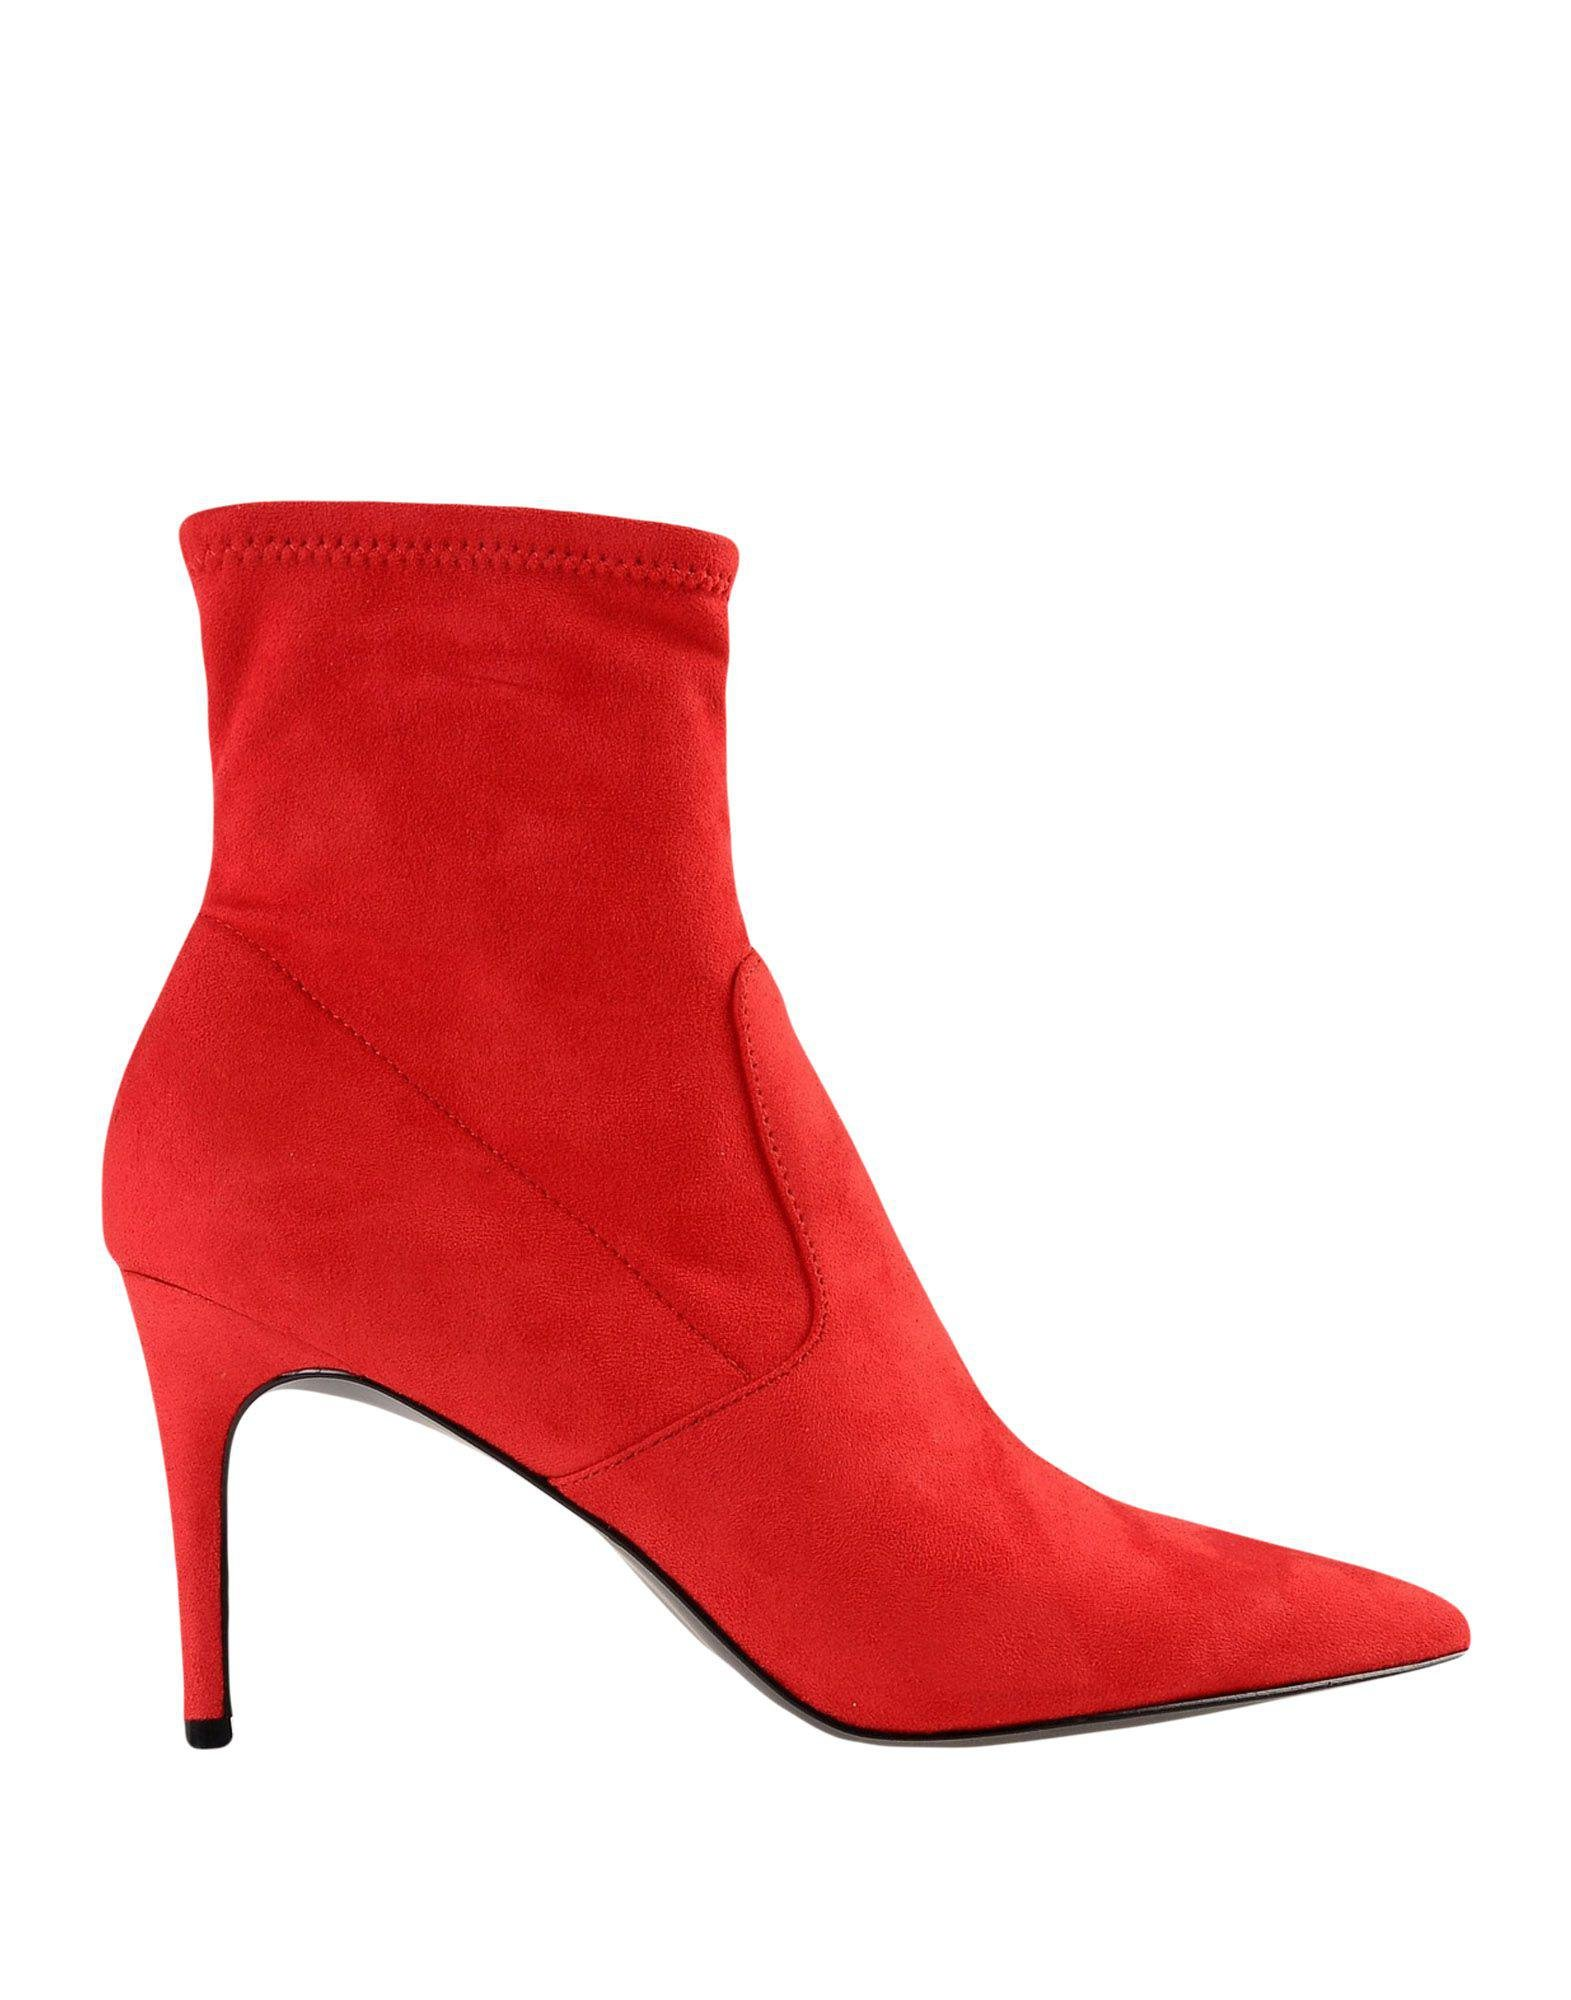 f1a327e3c Lyst - Steve Madden Ankle Boots in Red - Save 16%